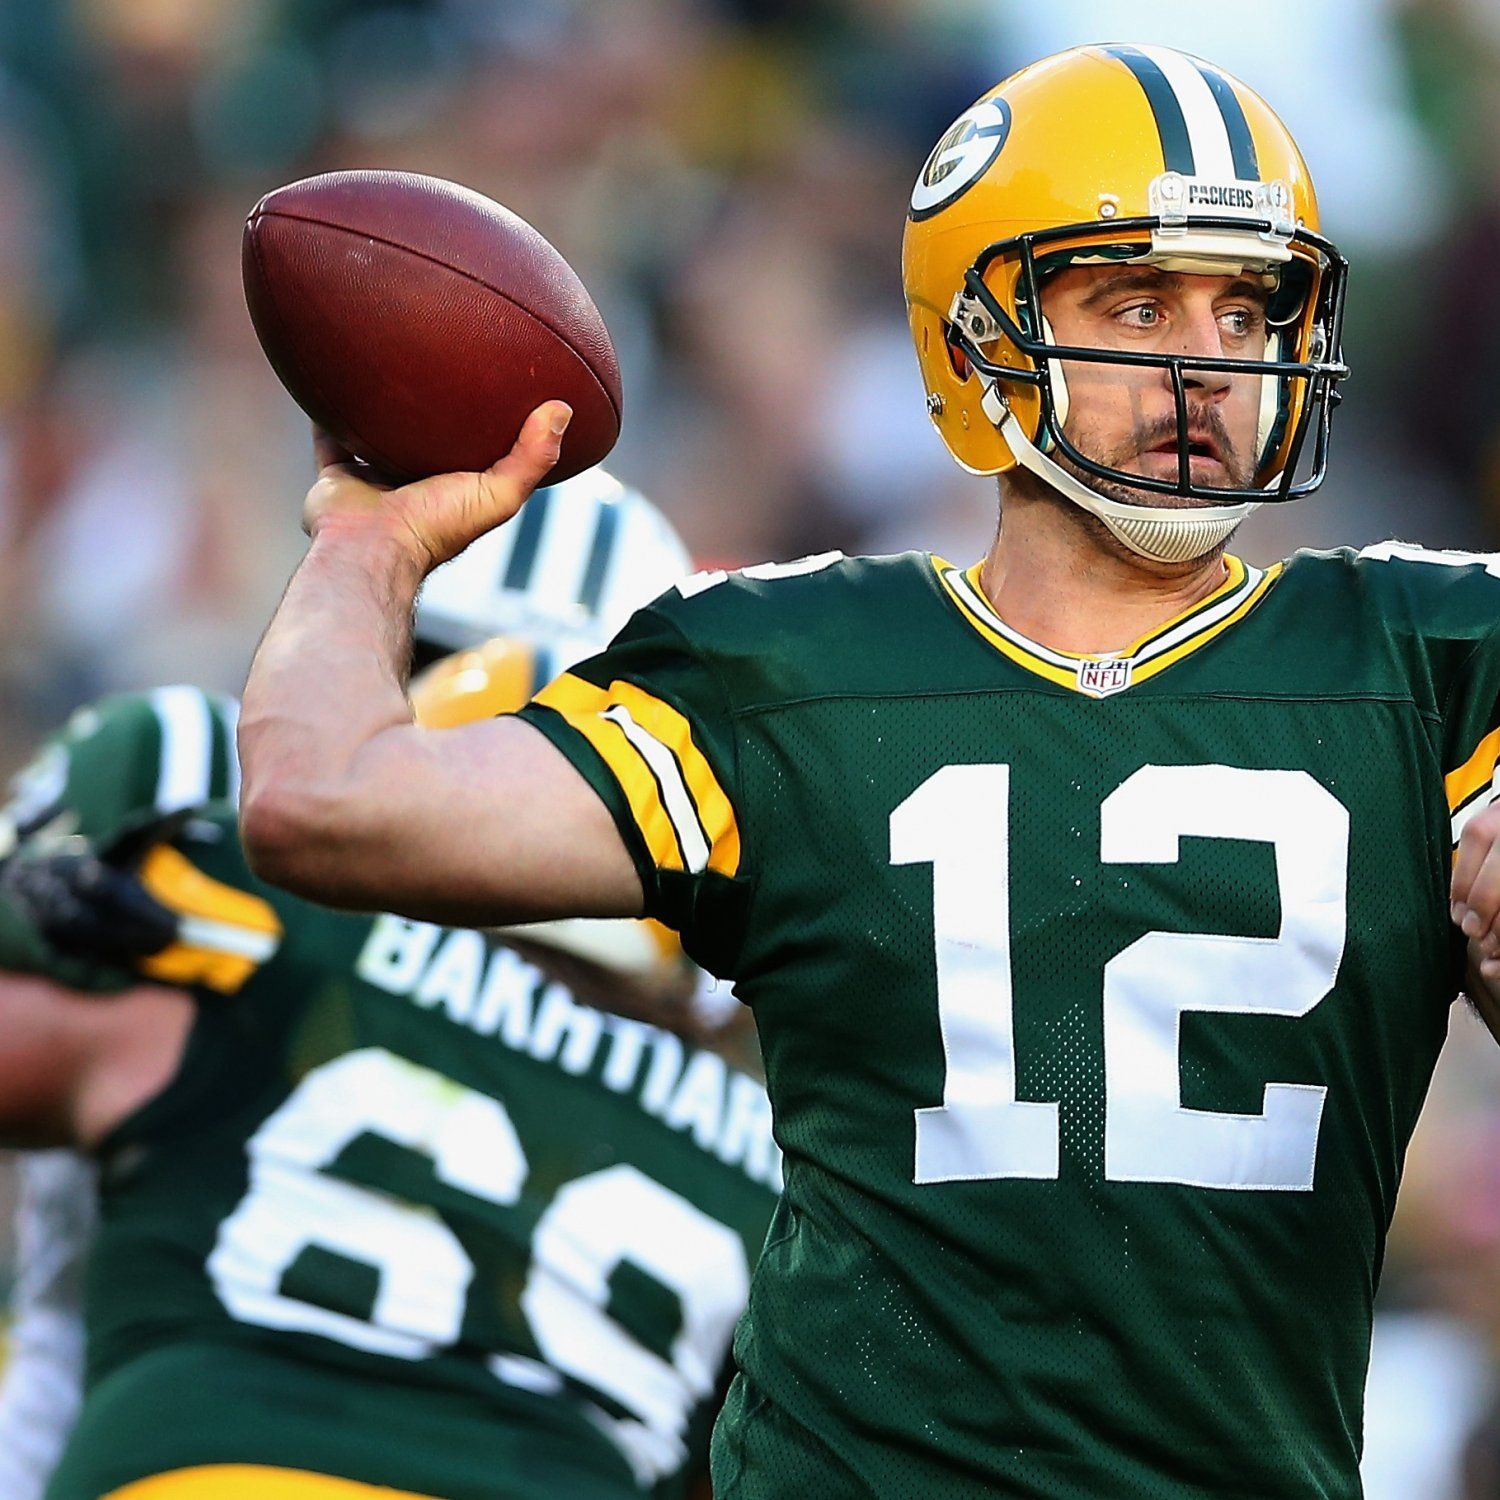 Packers Aaron Rodgers Passes Bart Starr On Franchise S Passing Yardage List With Images Aaron Rodgers Bart Starr Packers